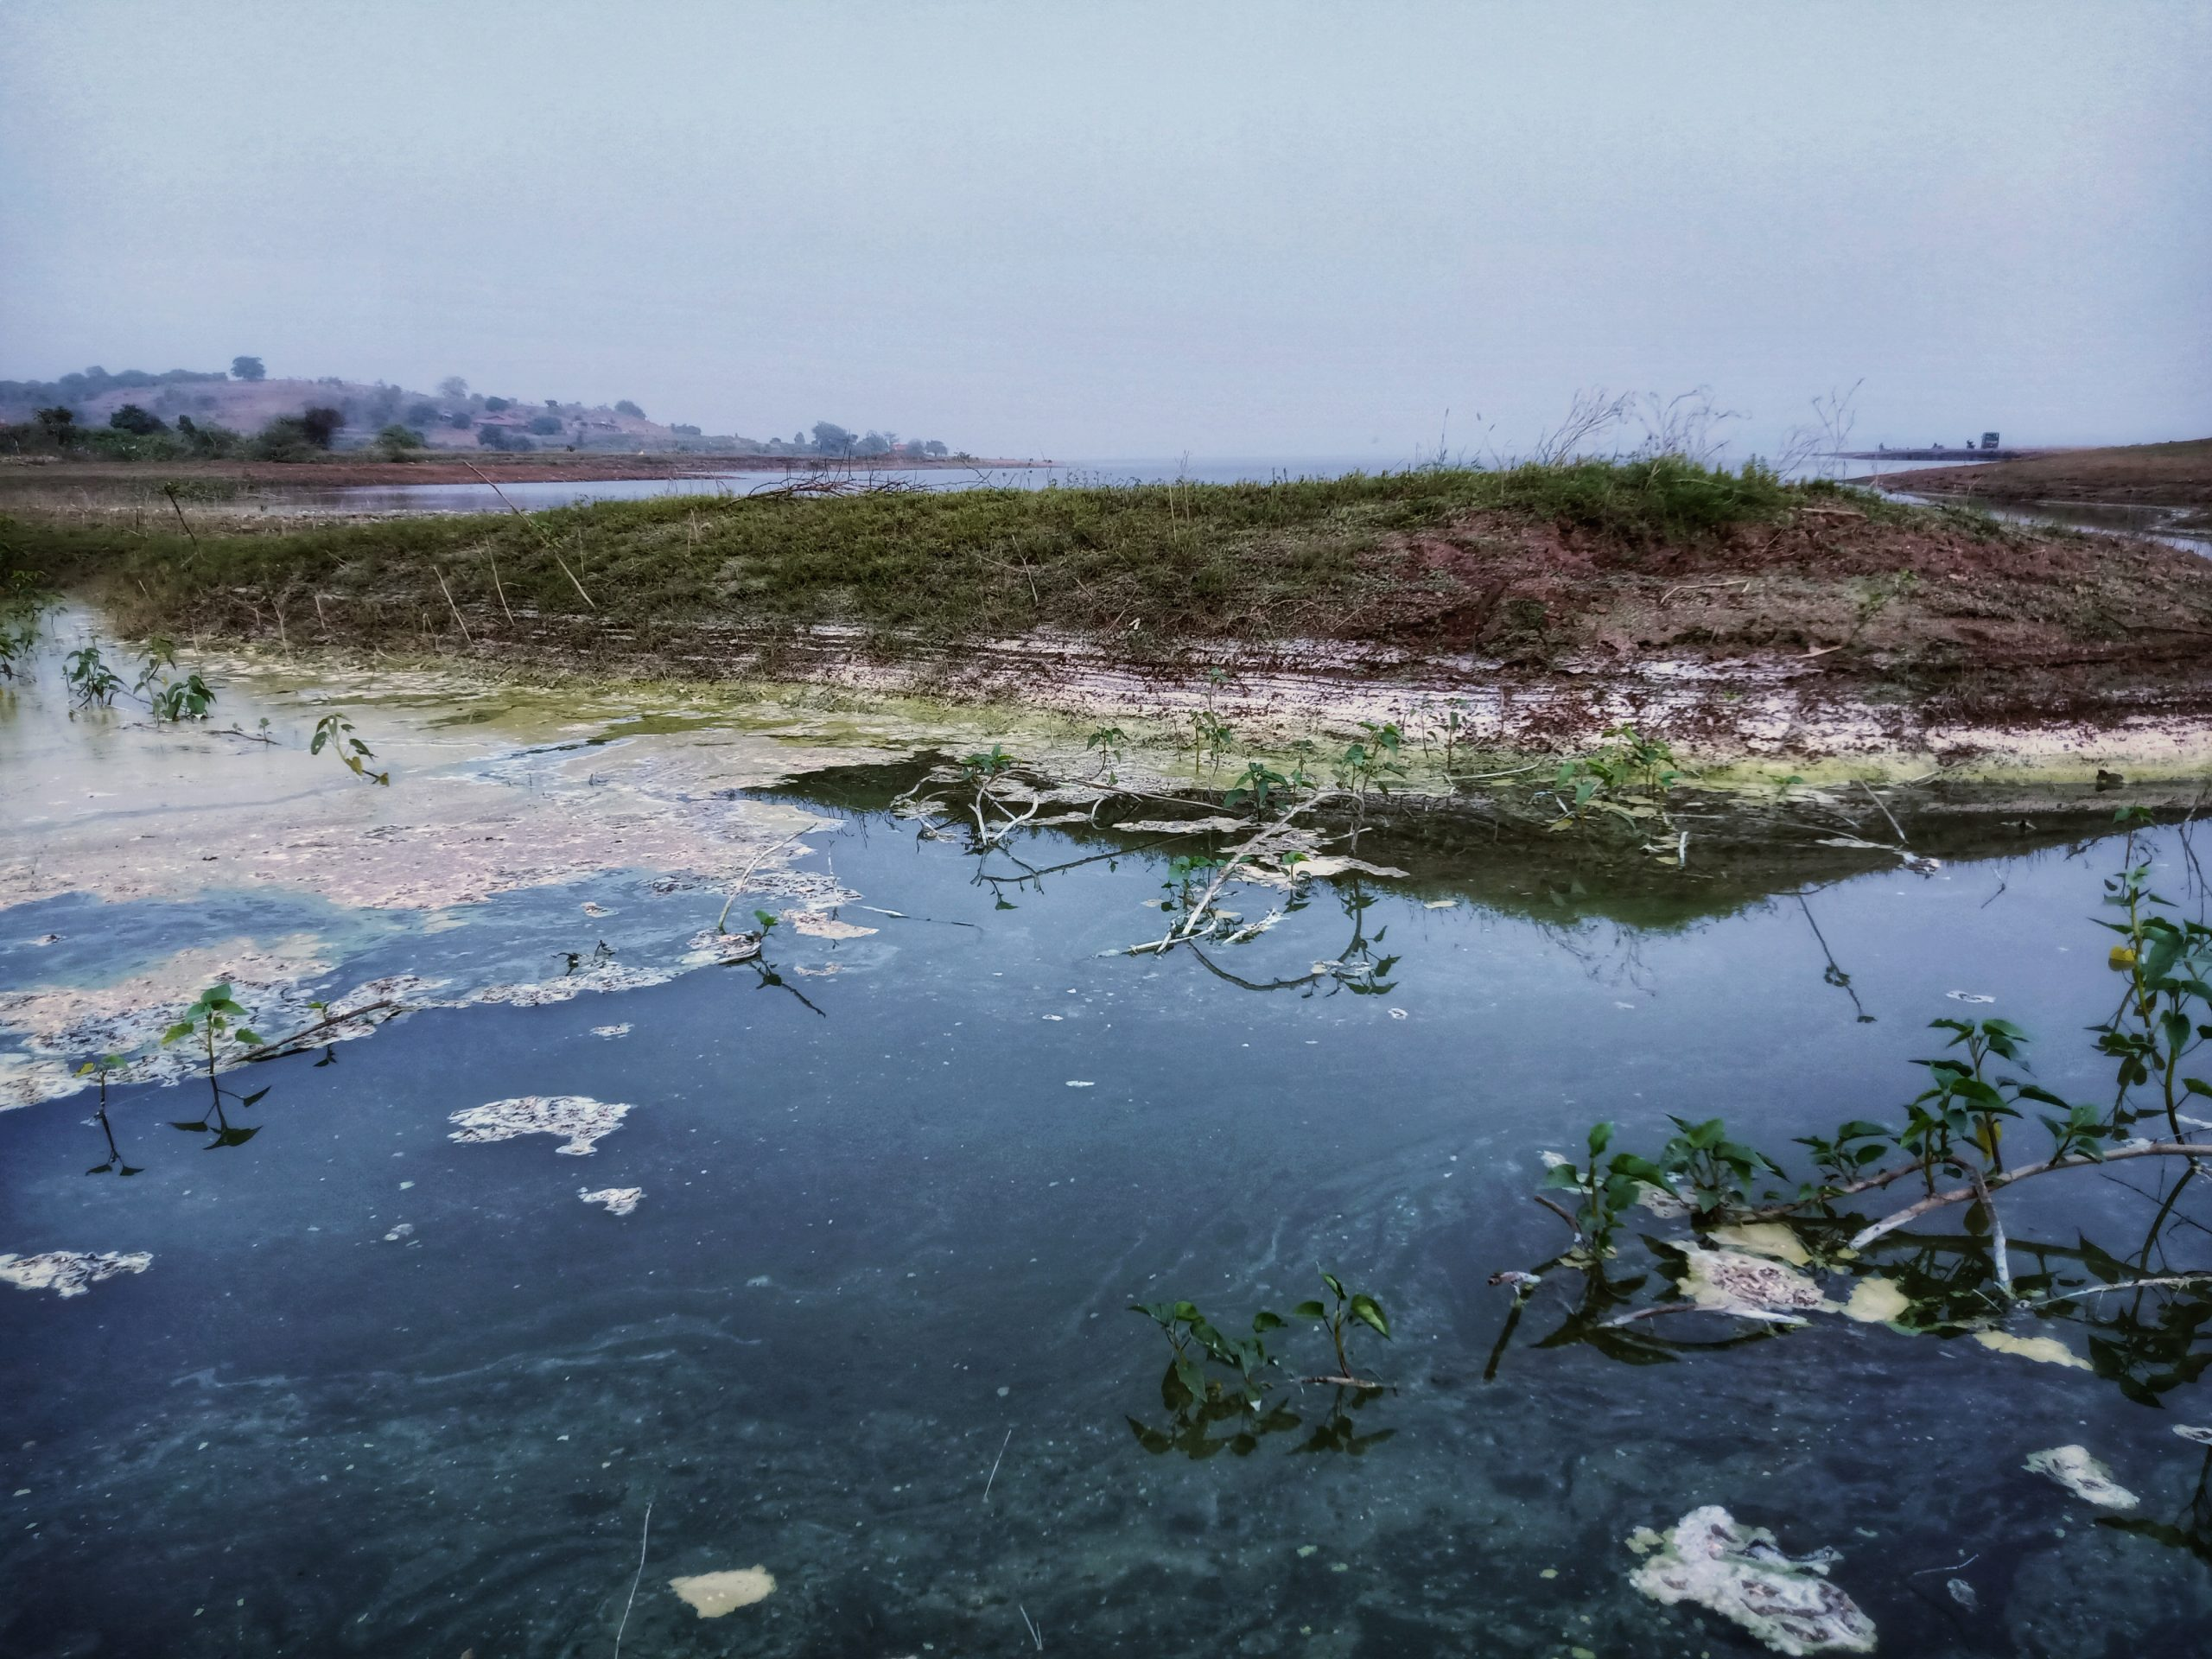 Landscape of a polluted lake